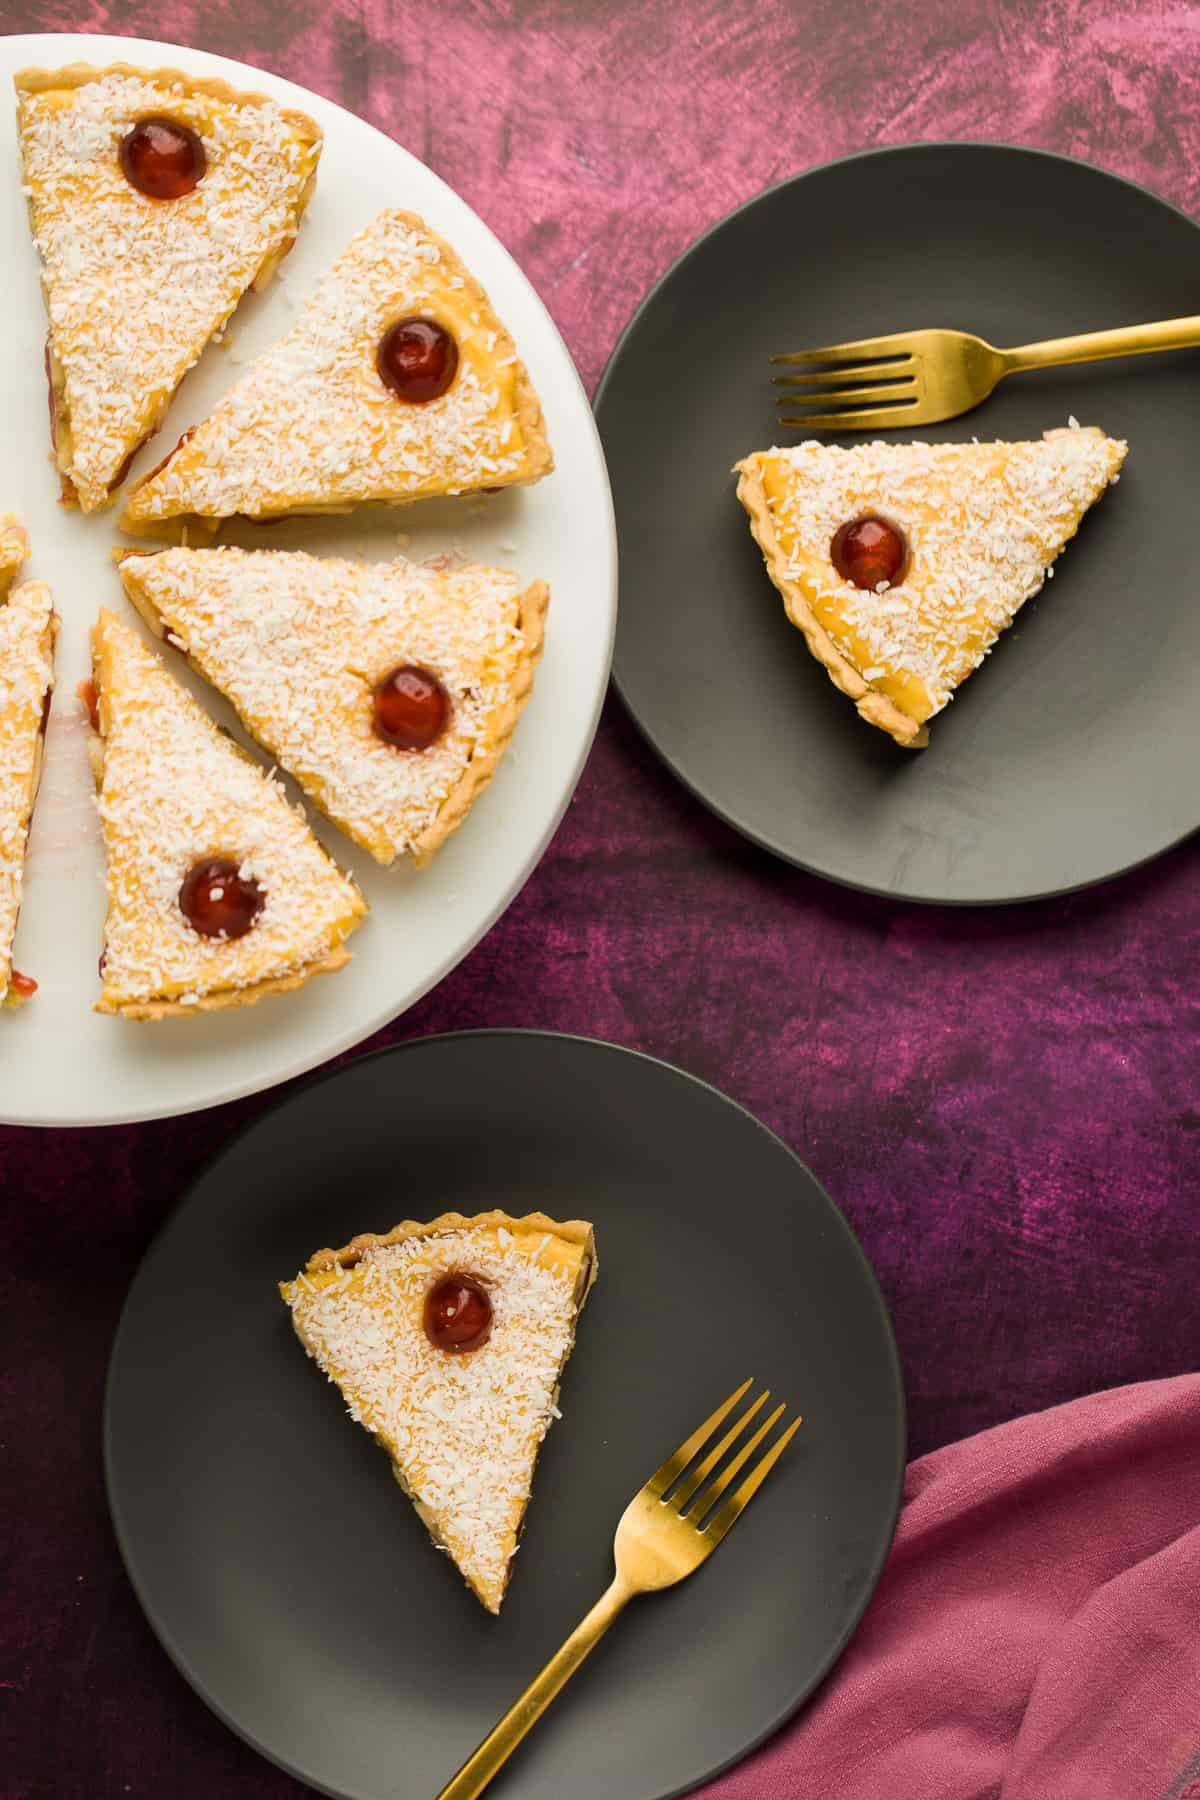 An old fashioned Manchester Tart cut in to slices.